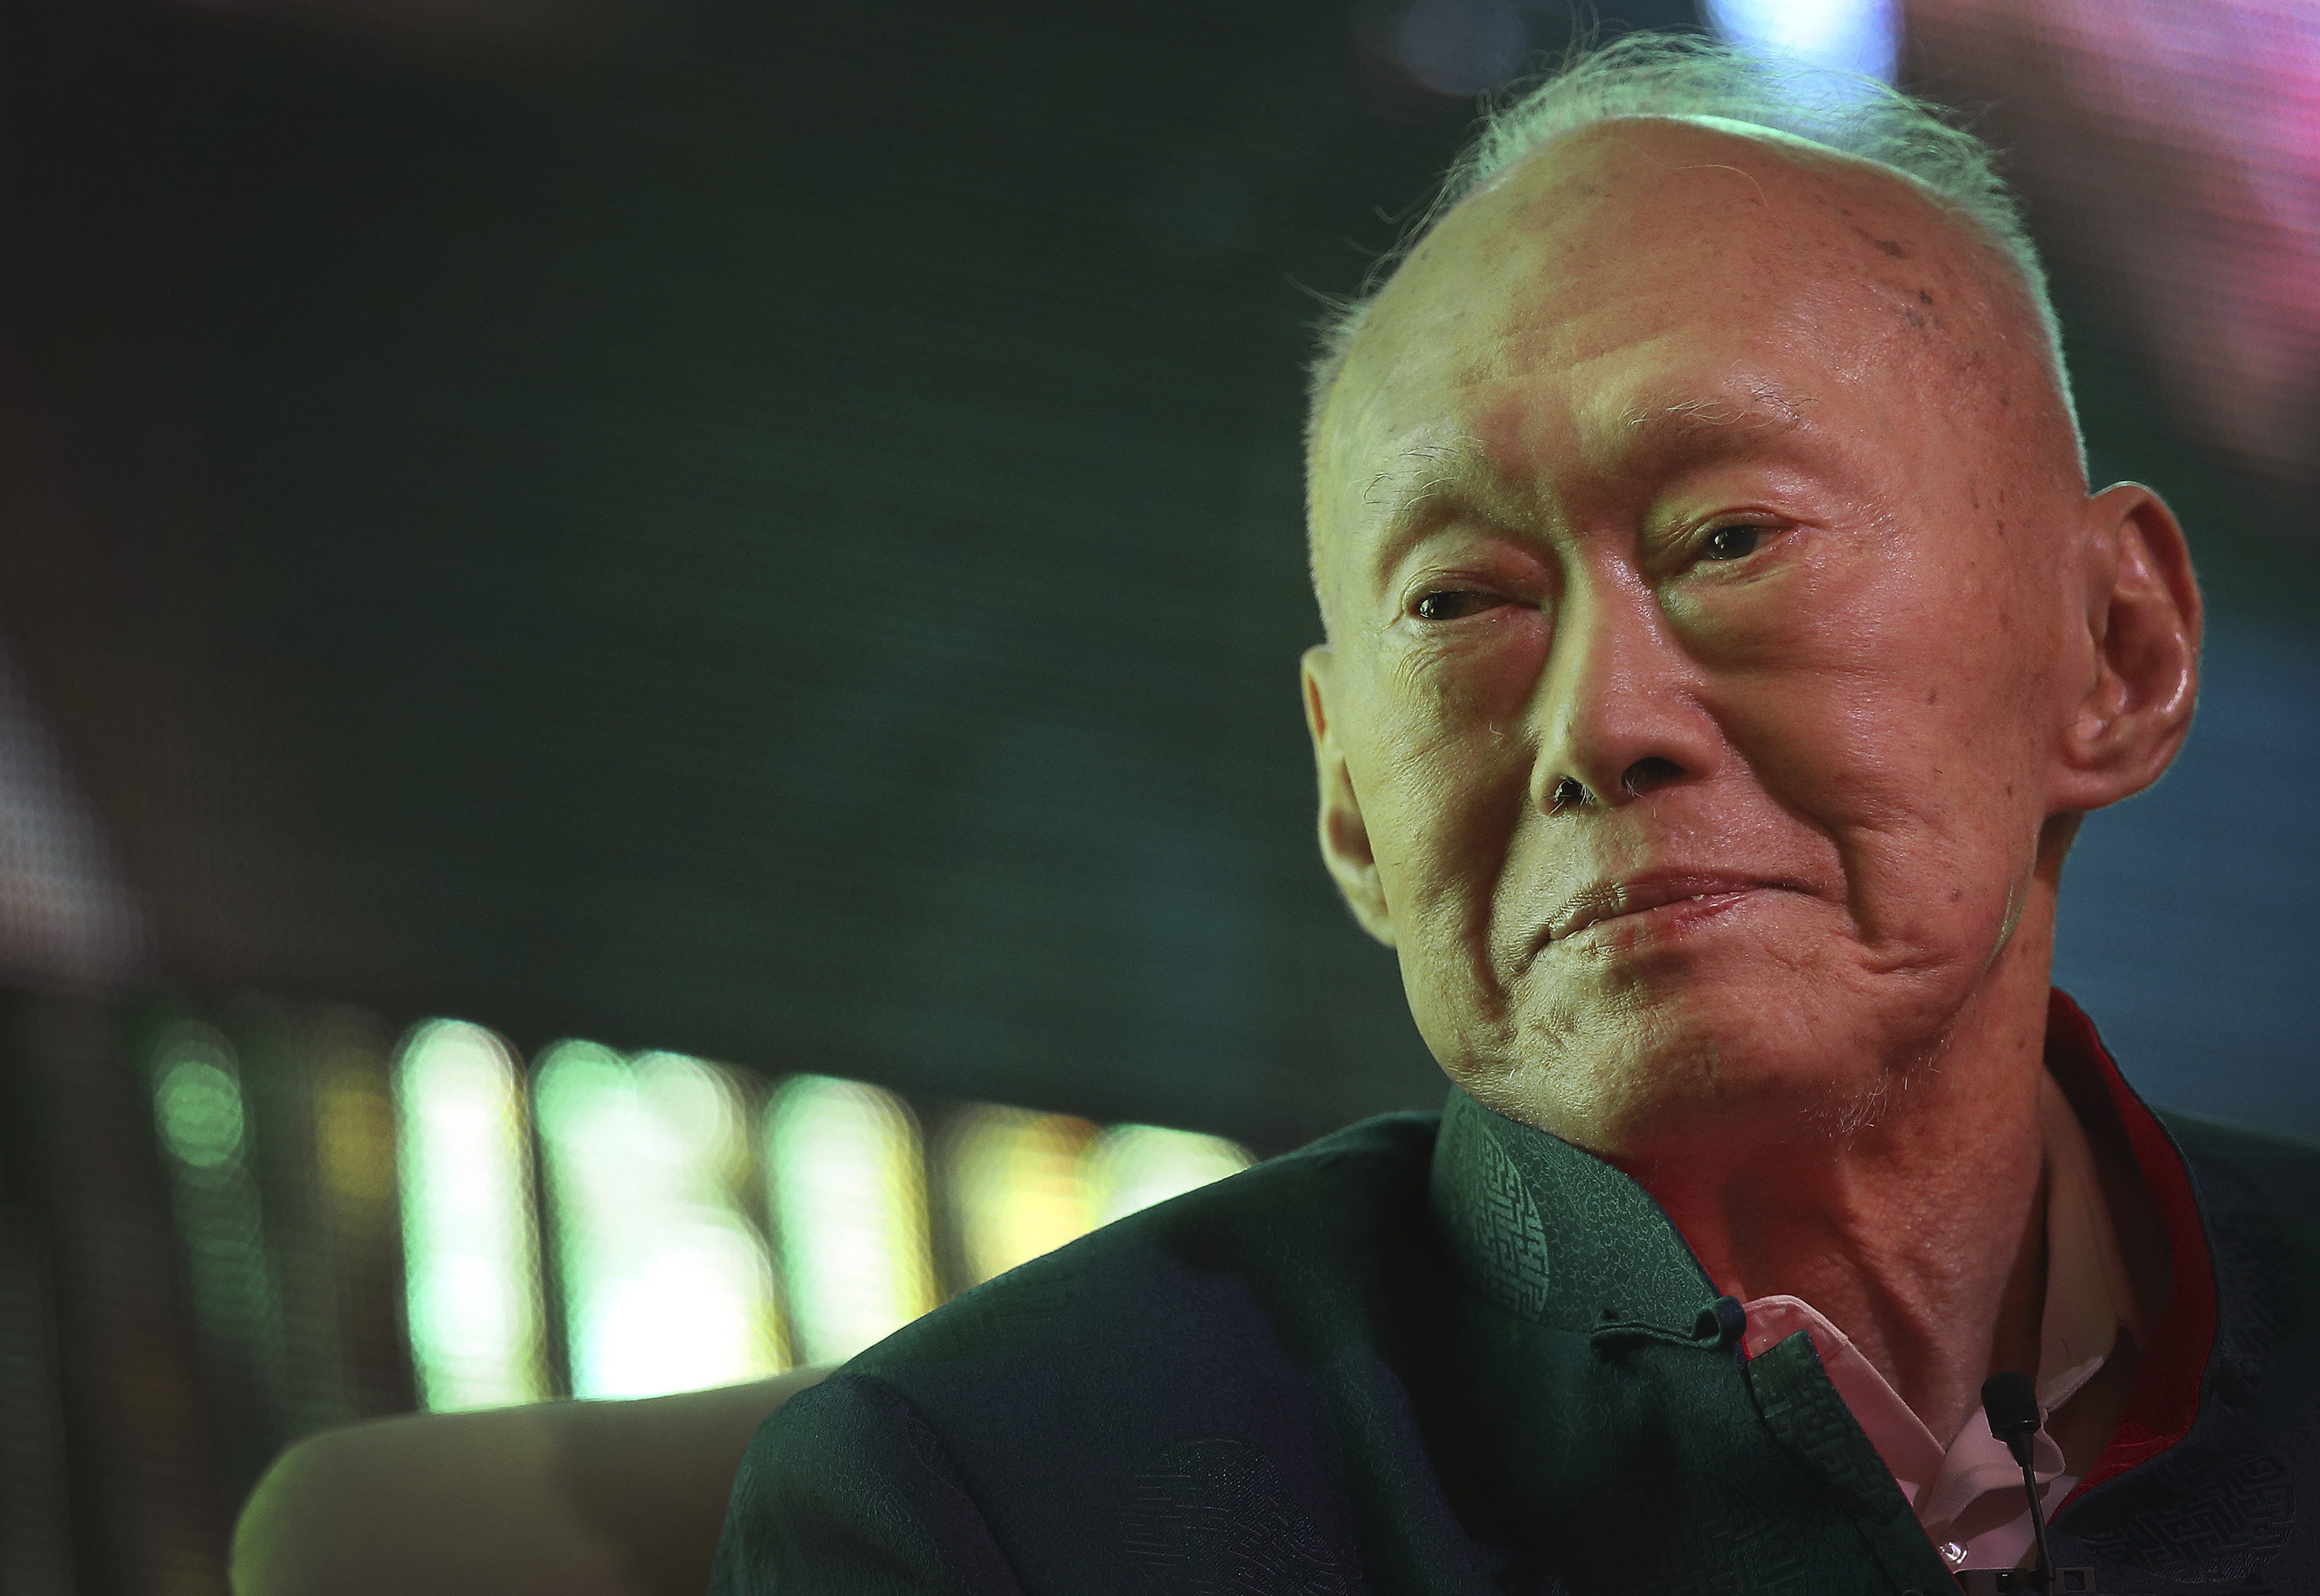 Singapore's former Prime Minister Lee Kuan Yew, March 20, 2013 in Singapore